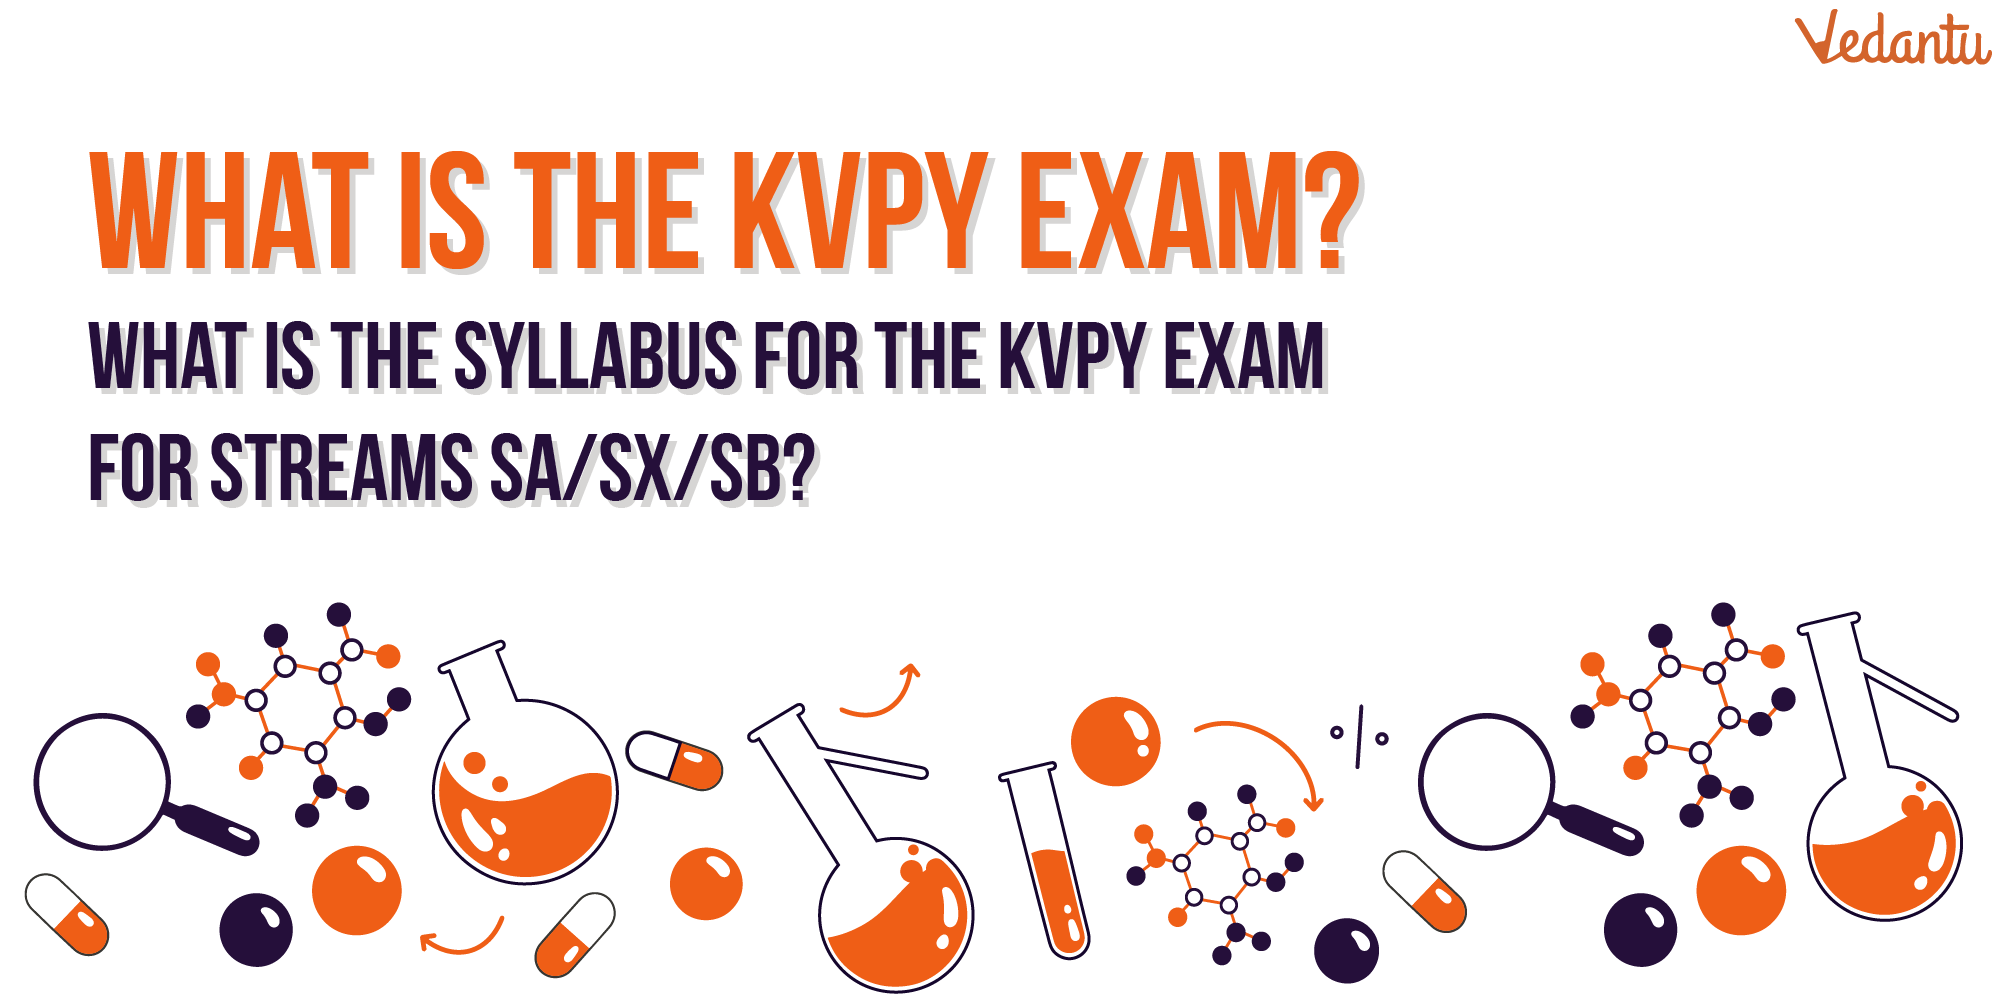 What is The Syllabus for The KVPY Exam for Streams SA/SX/SB?